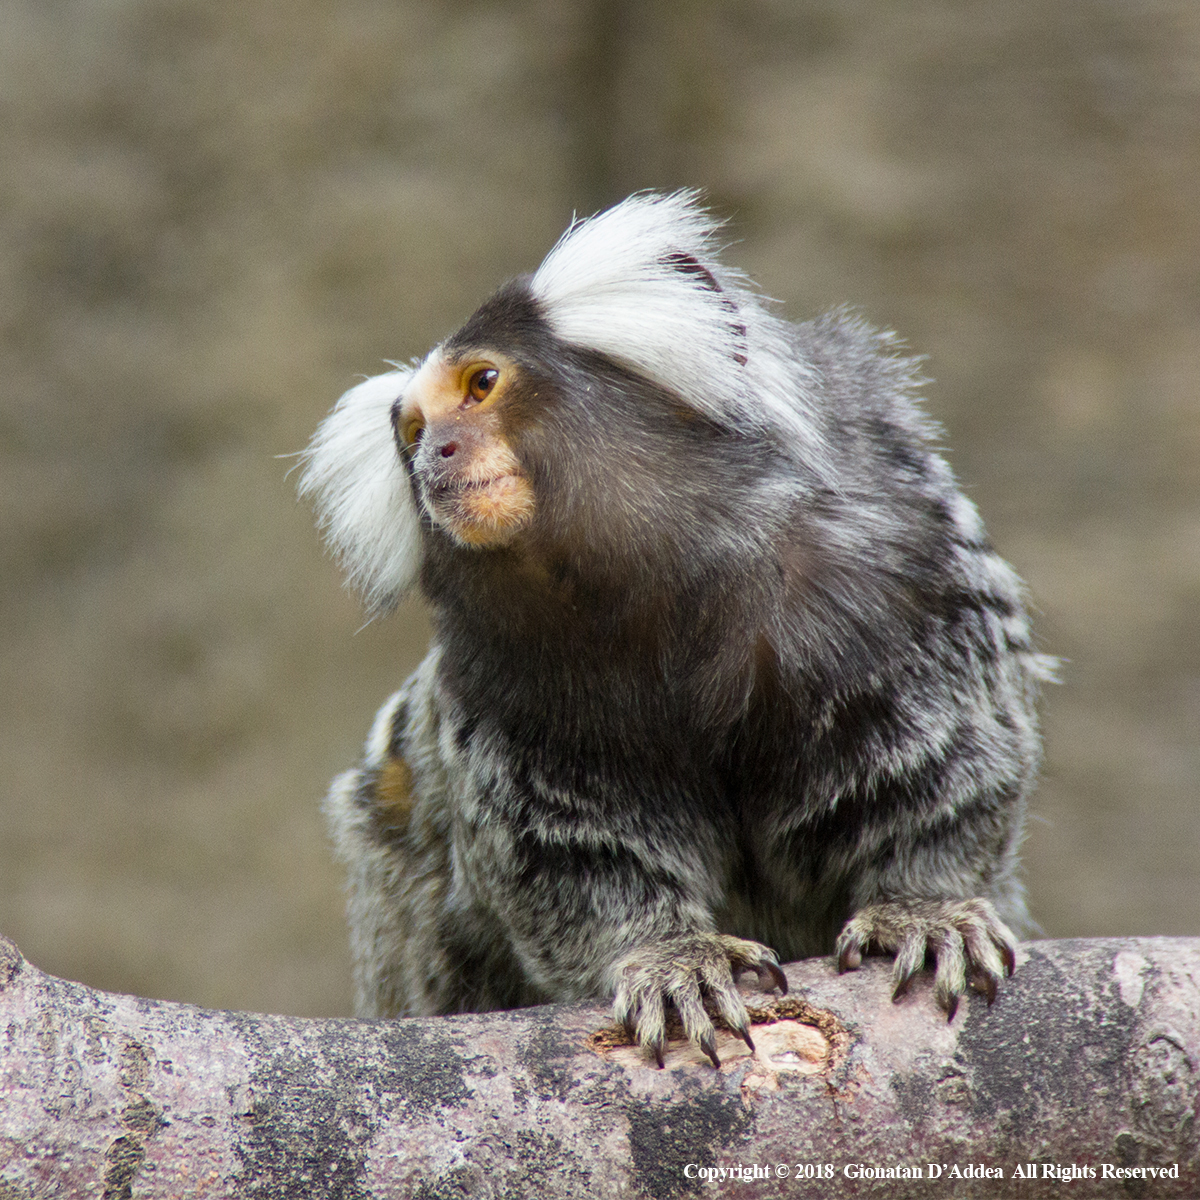 Marmoset Monkey by Gionatan D'Addea